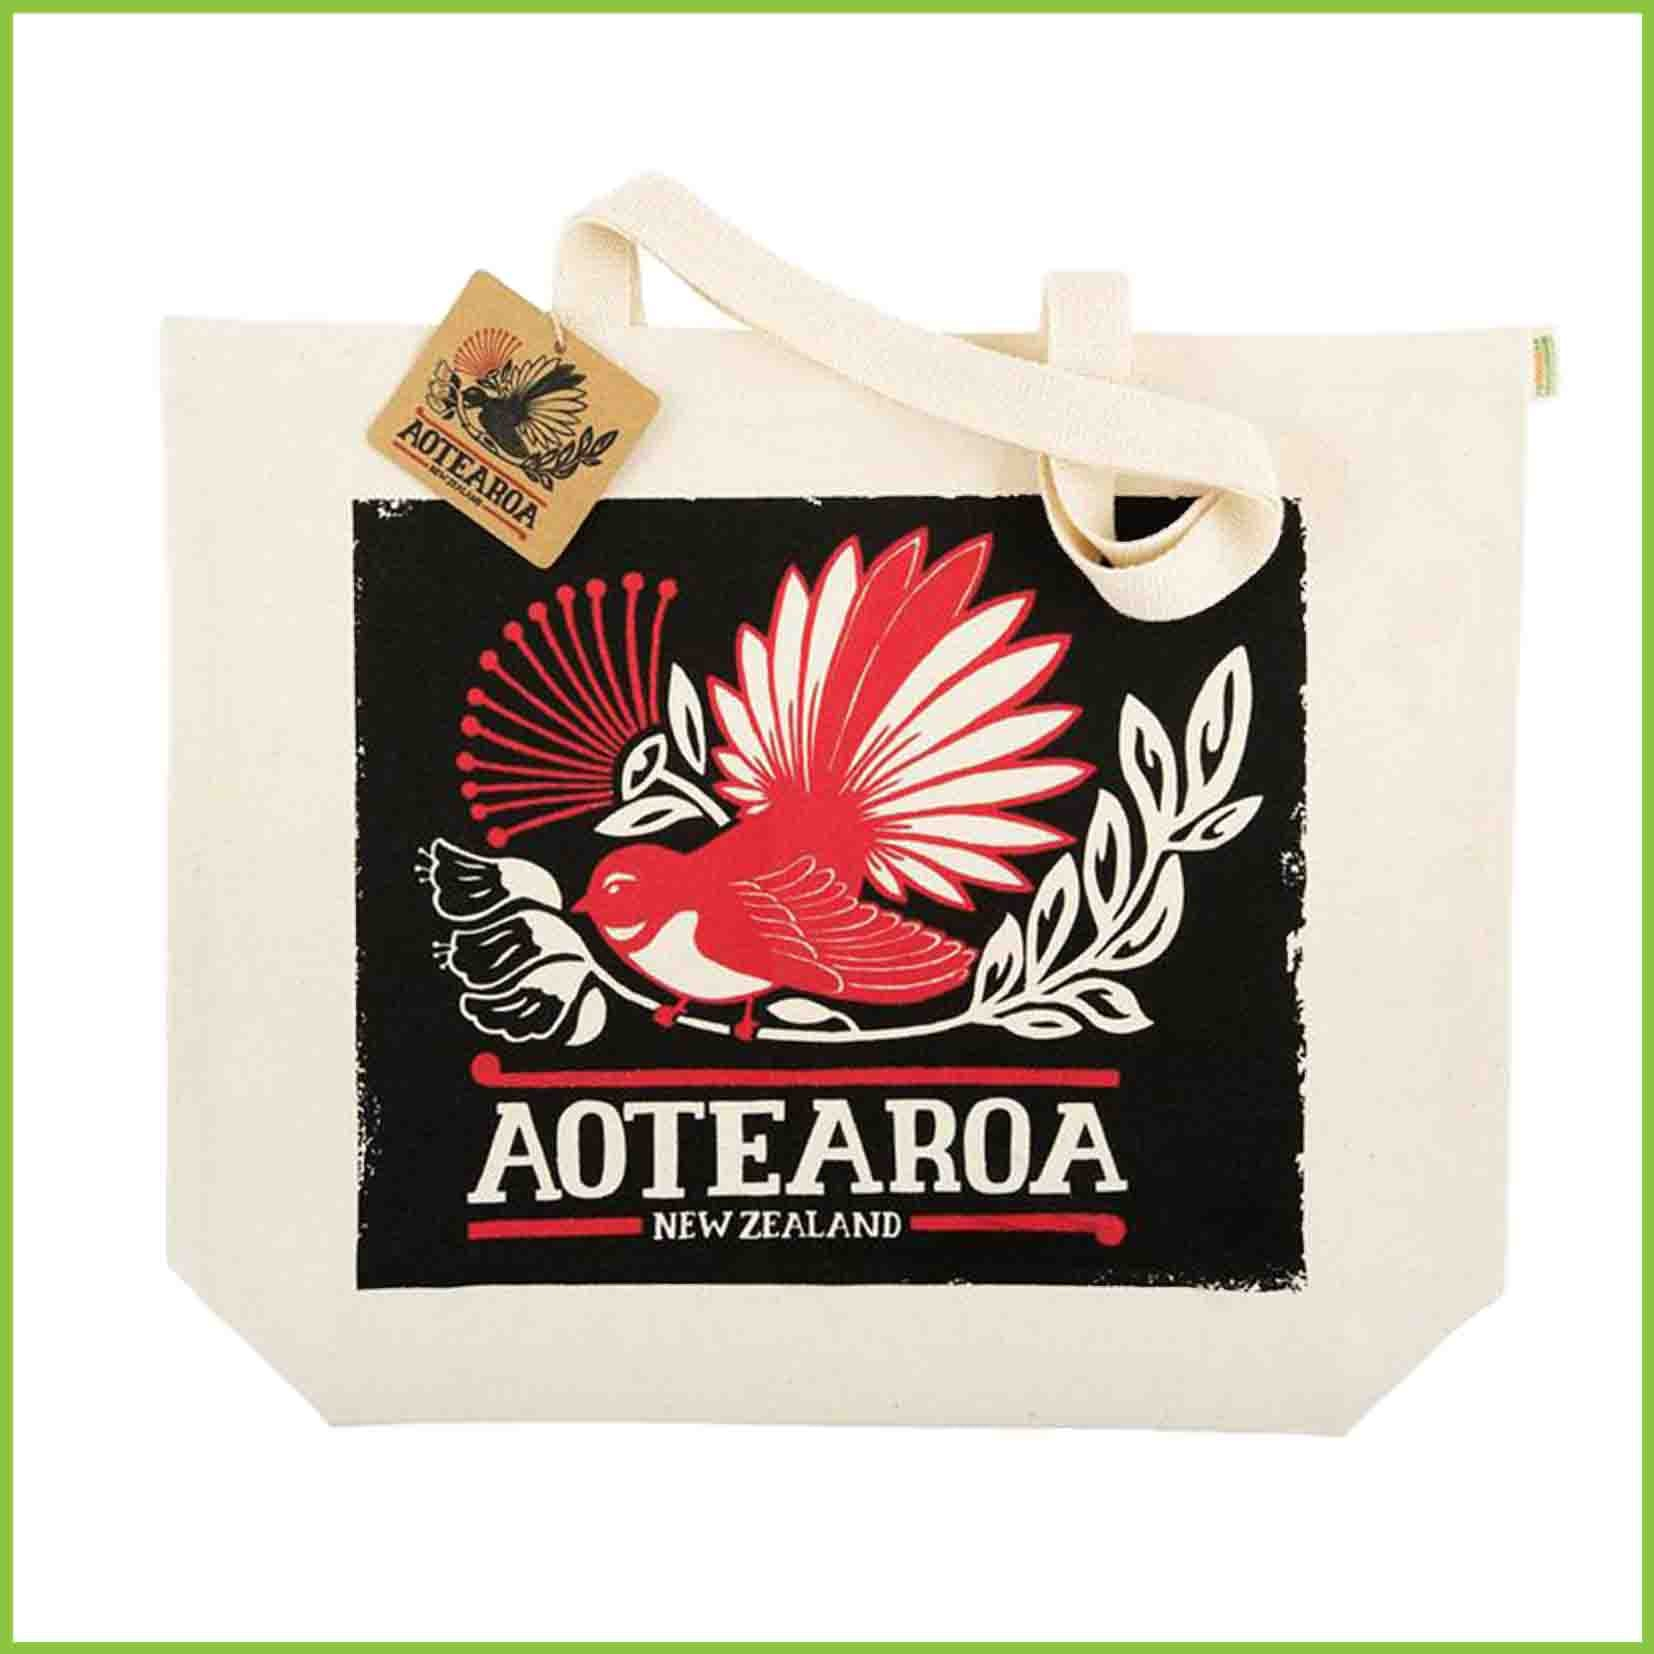 A strong reusable shopping bag made from organic cotton with a red and black design of a fantail and Aotearoa text.